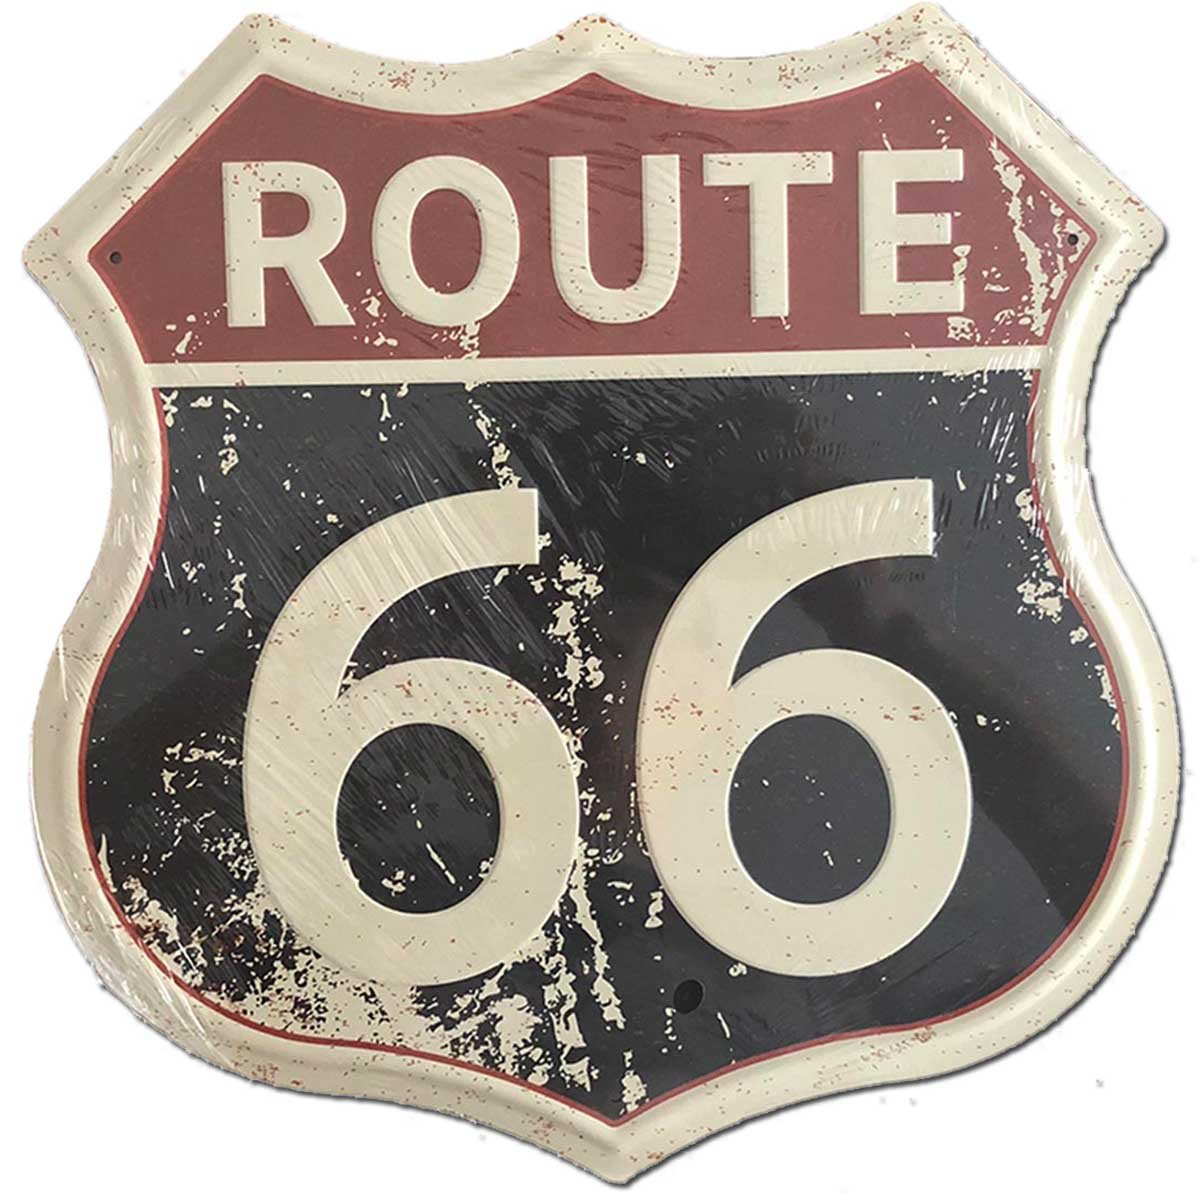 SUDAGEN Route 66 Signs Vintage Road Metal Signs for Garage Home Art Decor 12 x 12 Route 66